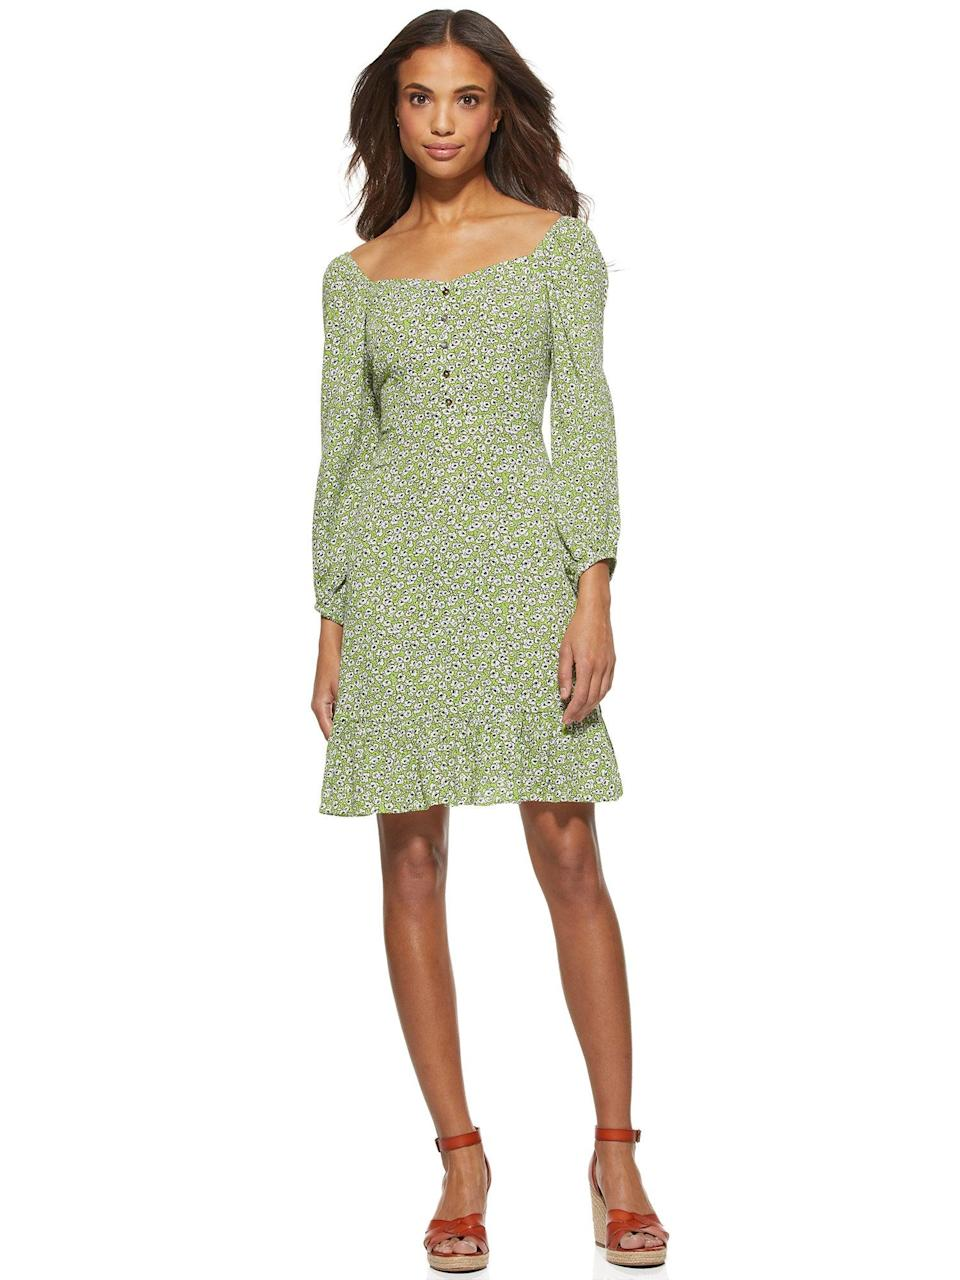 """This dress is regrettably not on sale but, there's plenty of <a href=""""https://www.walmart.com/browse/scoop/scoop-shop-all/5438_3317124_5800740_2704792?cat_id=5438_3317124_5800740_2704792_4936432&facet=special_offers%3AClearance"""" rel=""""nofollow noopener"""" target=""""_blank"""" data-ylk=""""slk:other Scoop frocks listed at clearance prices"""" class=""""link rapid-noclick-resp"""">other Scoop frocks listed at clearance prices</a>. <br> <br> <strong>Scoop</strong> Square Neck Mini Dress, $, available at <a href=""""https://go.skimresources.com/?id=30283X879131&url=https%3A%2F%2Fwww.walmart.com%2Fip%2FScoop-Women-s-Square-Neck-Mini-Dress%2F446742806"""" rel=""""nofollow noopener"""" target=""""_blank"""" data-ylk=""""slk:Walmart"""" class=""""link rapid-noclick-resp"""">Walmart</a>"""